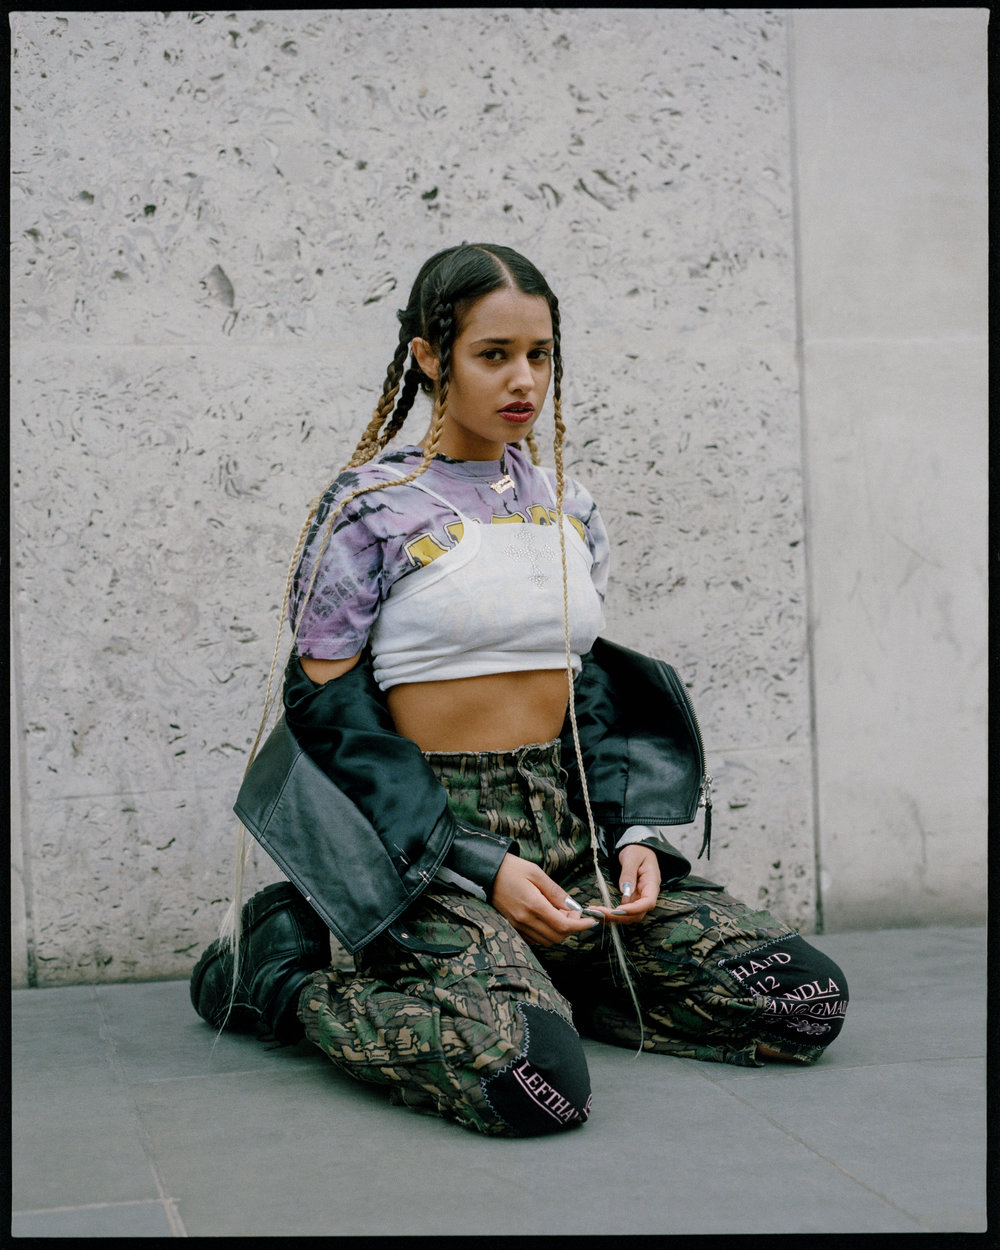 TOMMY Genesis / hero magazine